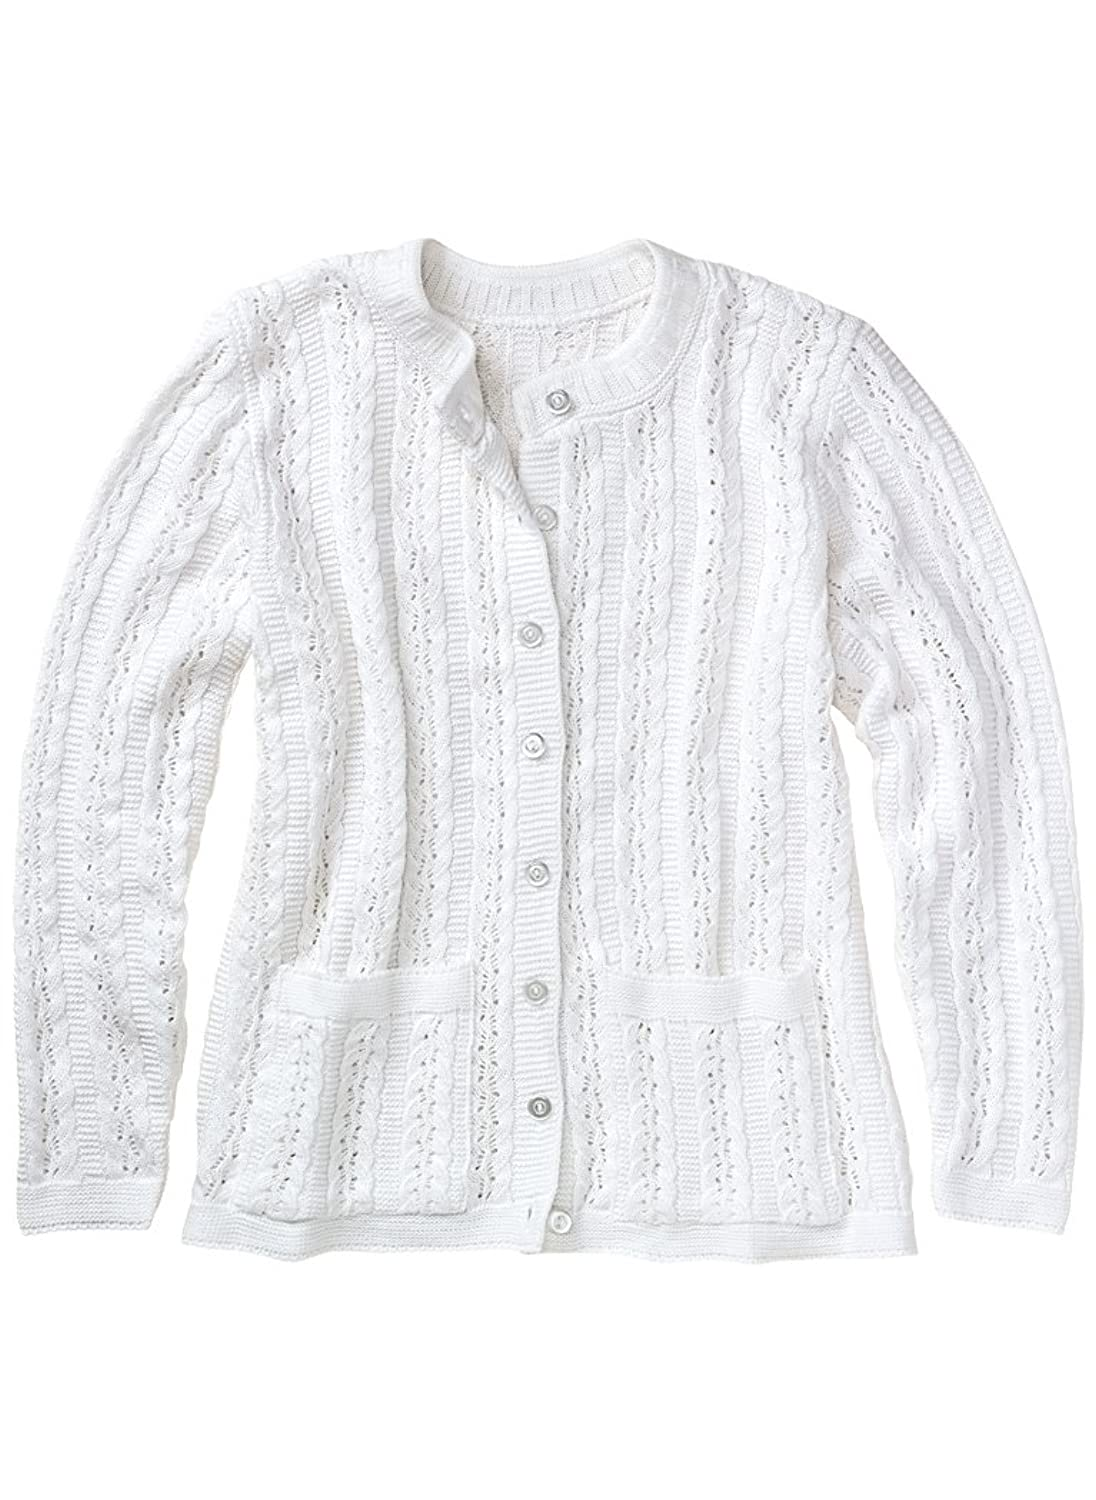 1950s Sweaters, 50s Cardigans, 50s Jumpers Cable Stitch Cardigan $29.99 AT vintagedancer.com